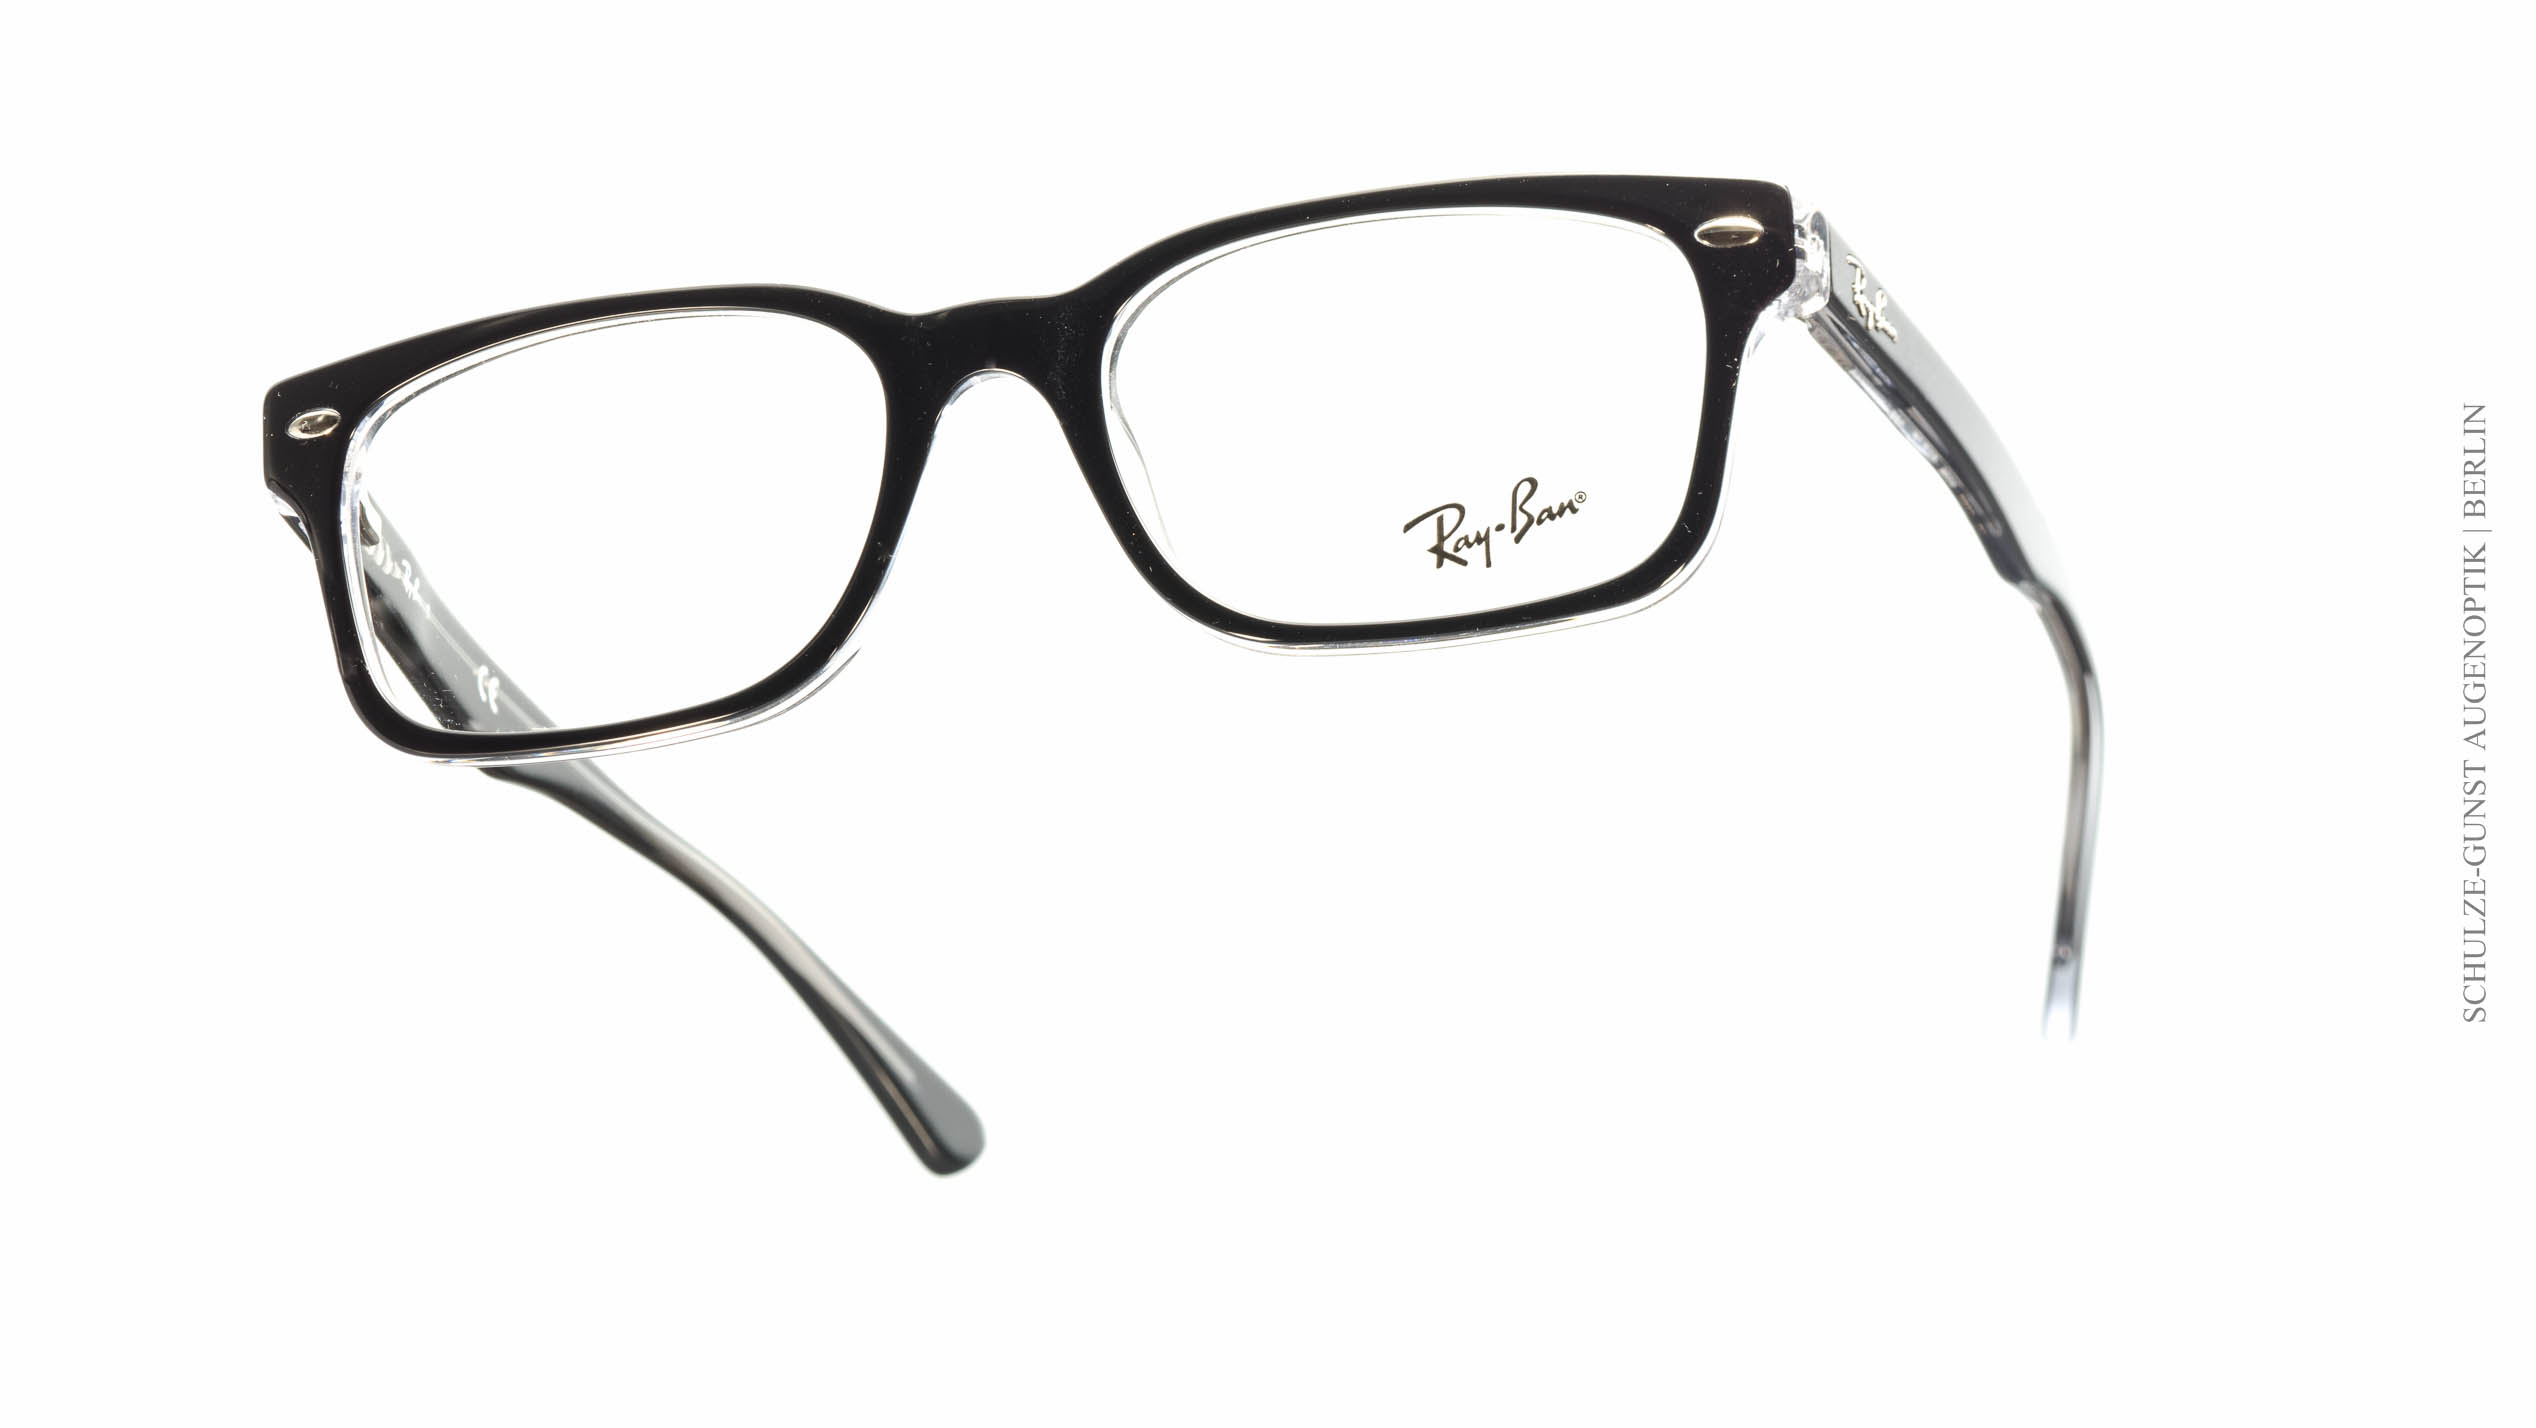 ray ban herrenbrille